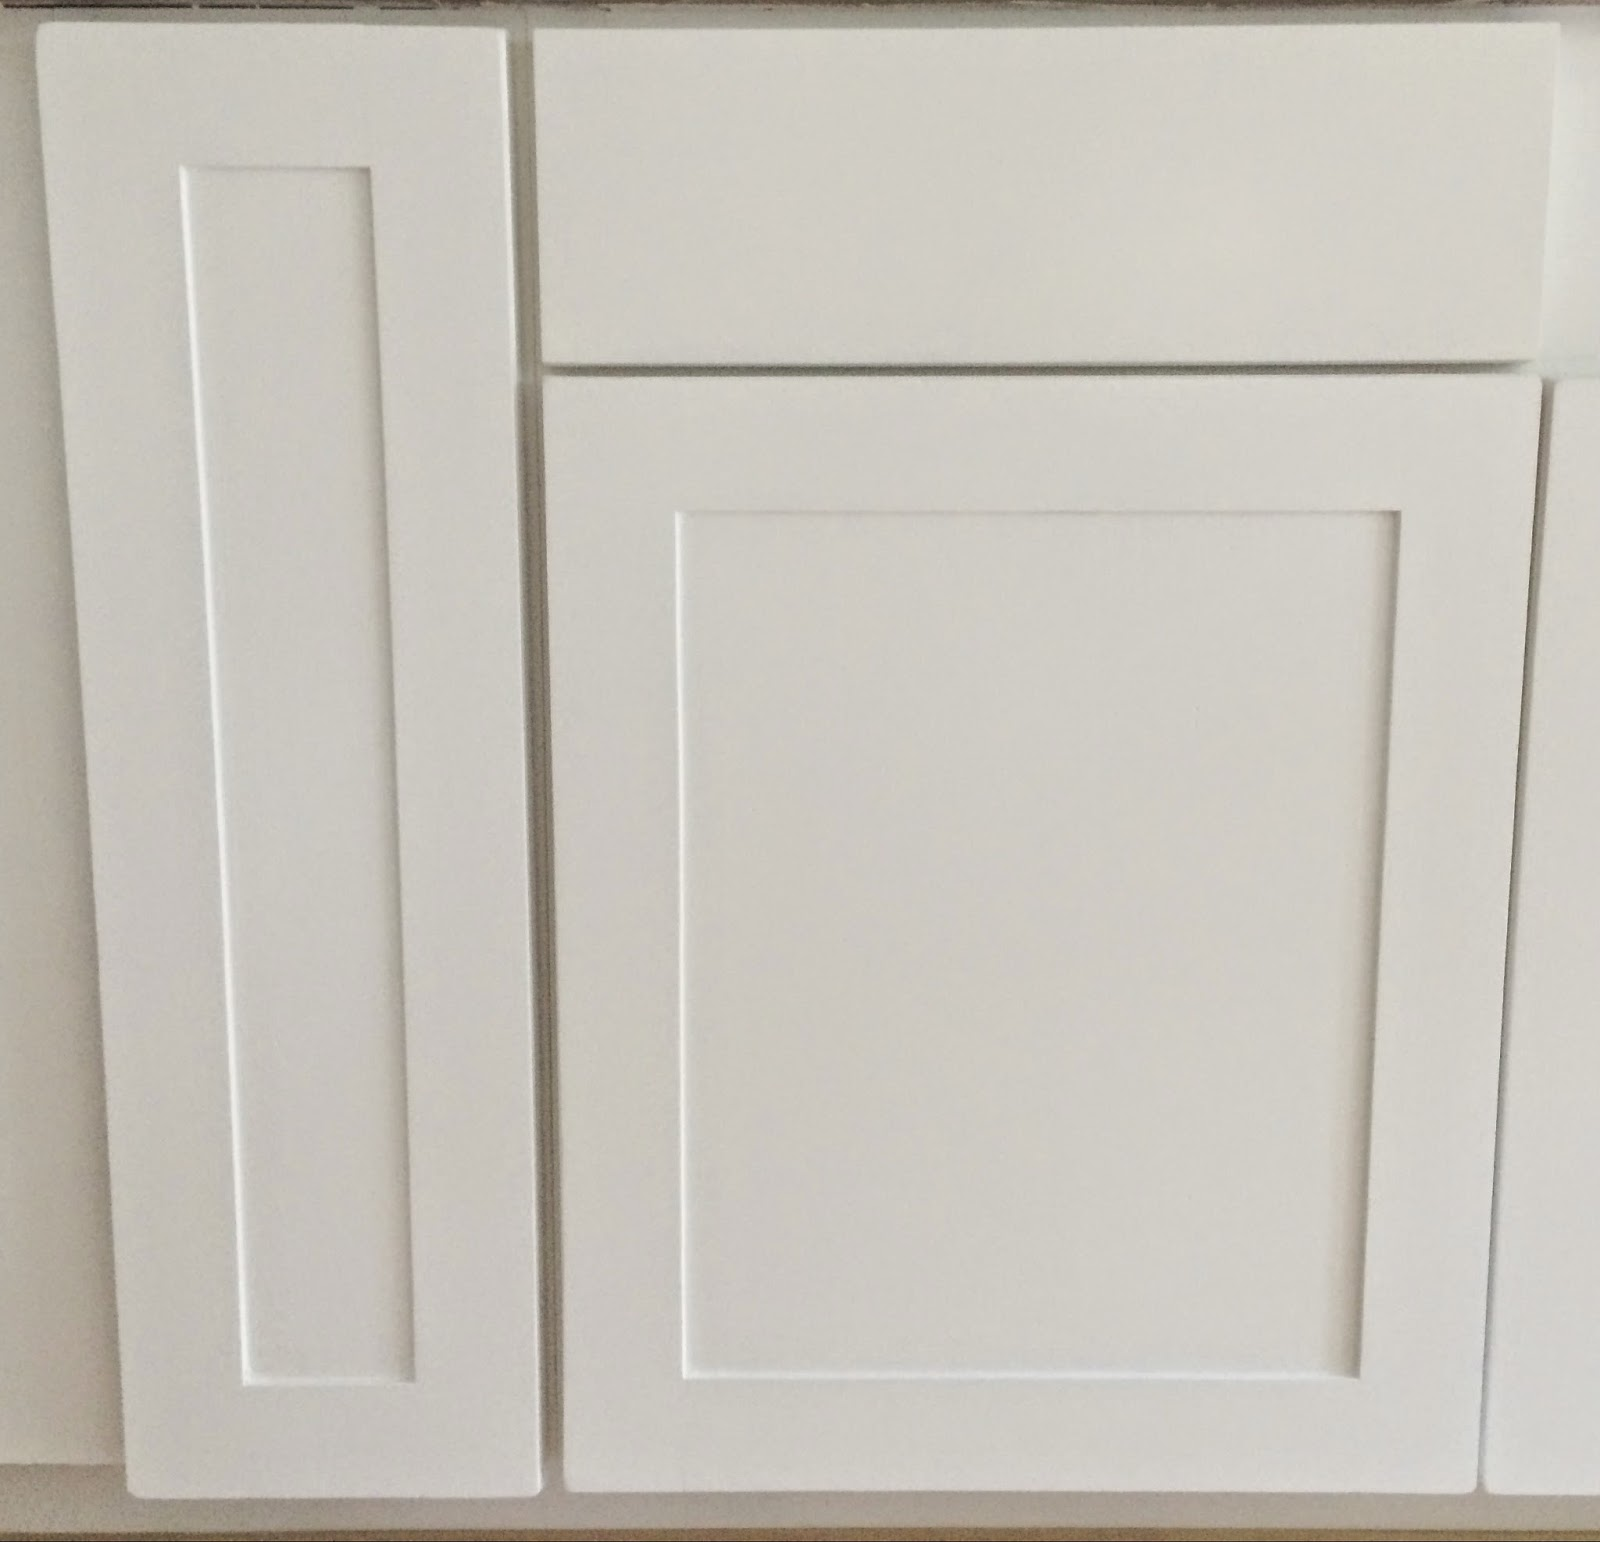 Shaker Doors Escon Doors Mv8005p 2 5 Panel Shaker Style